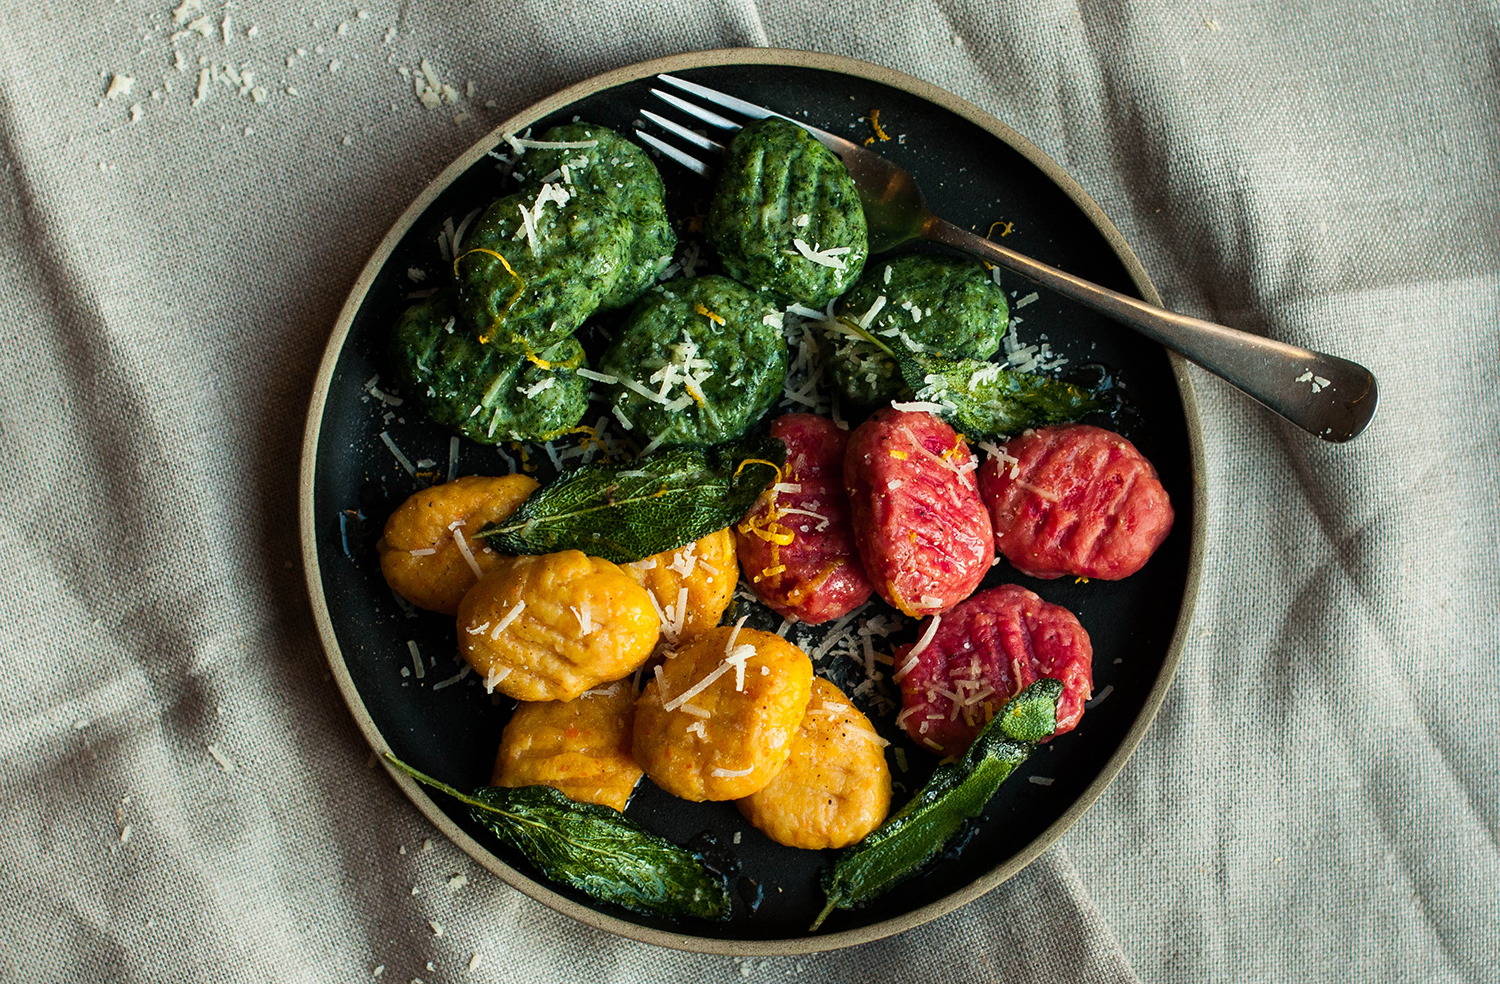 homemade-gnocchi-ricotta-spinach-carrot-beetroot-lea-lou-1